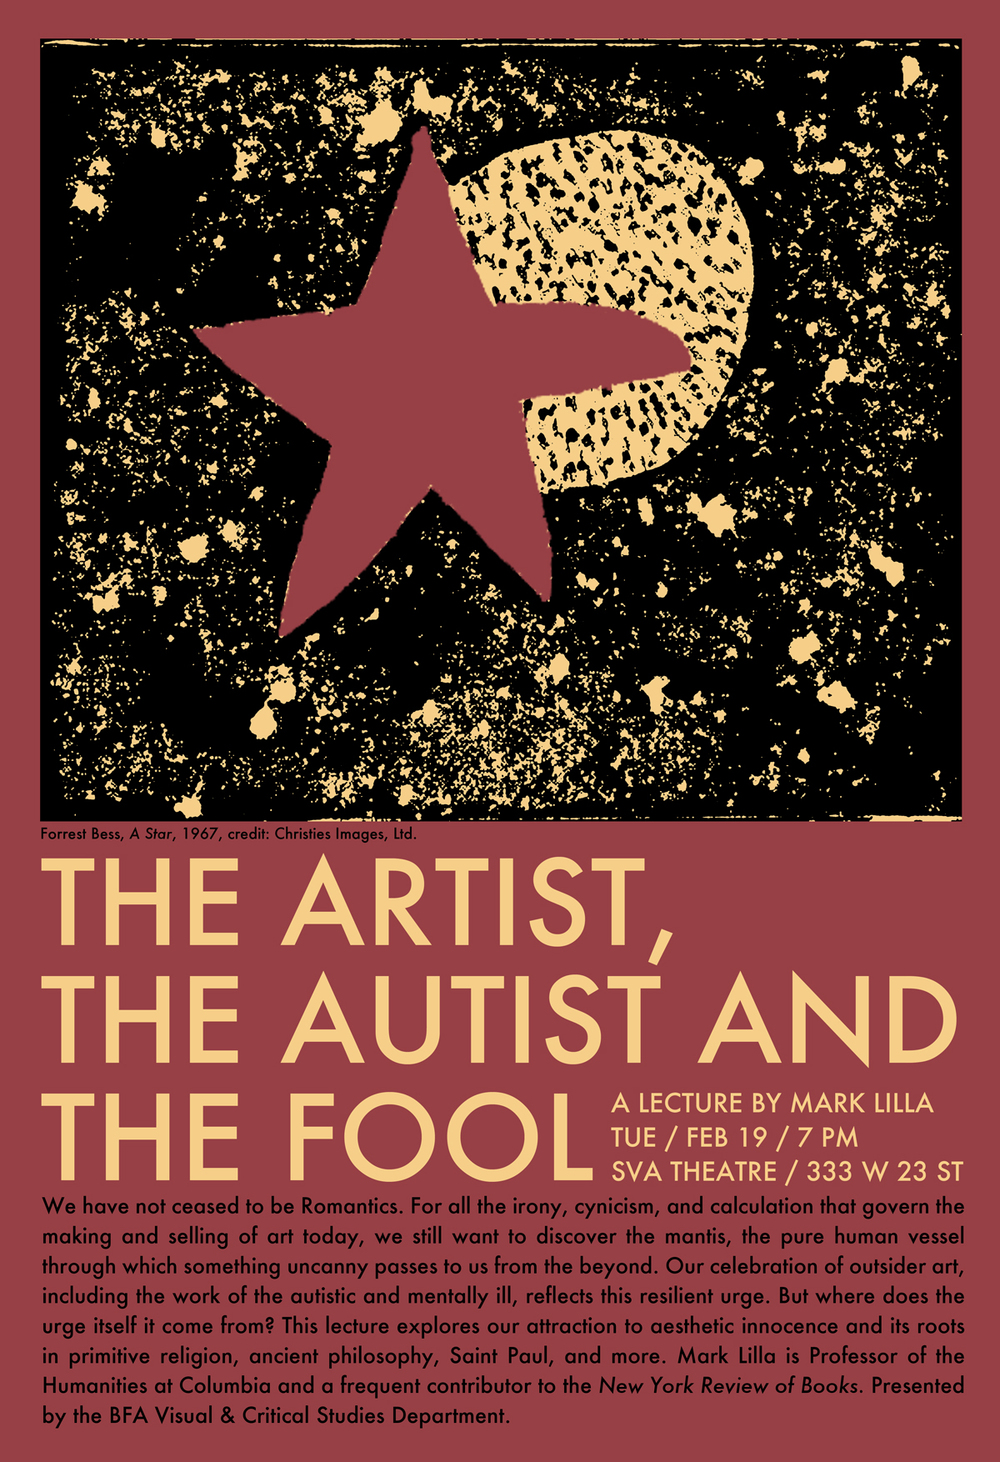 The-Artist,-The-Autist,-and-the-Fool-Poster.jpg